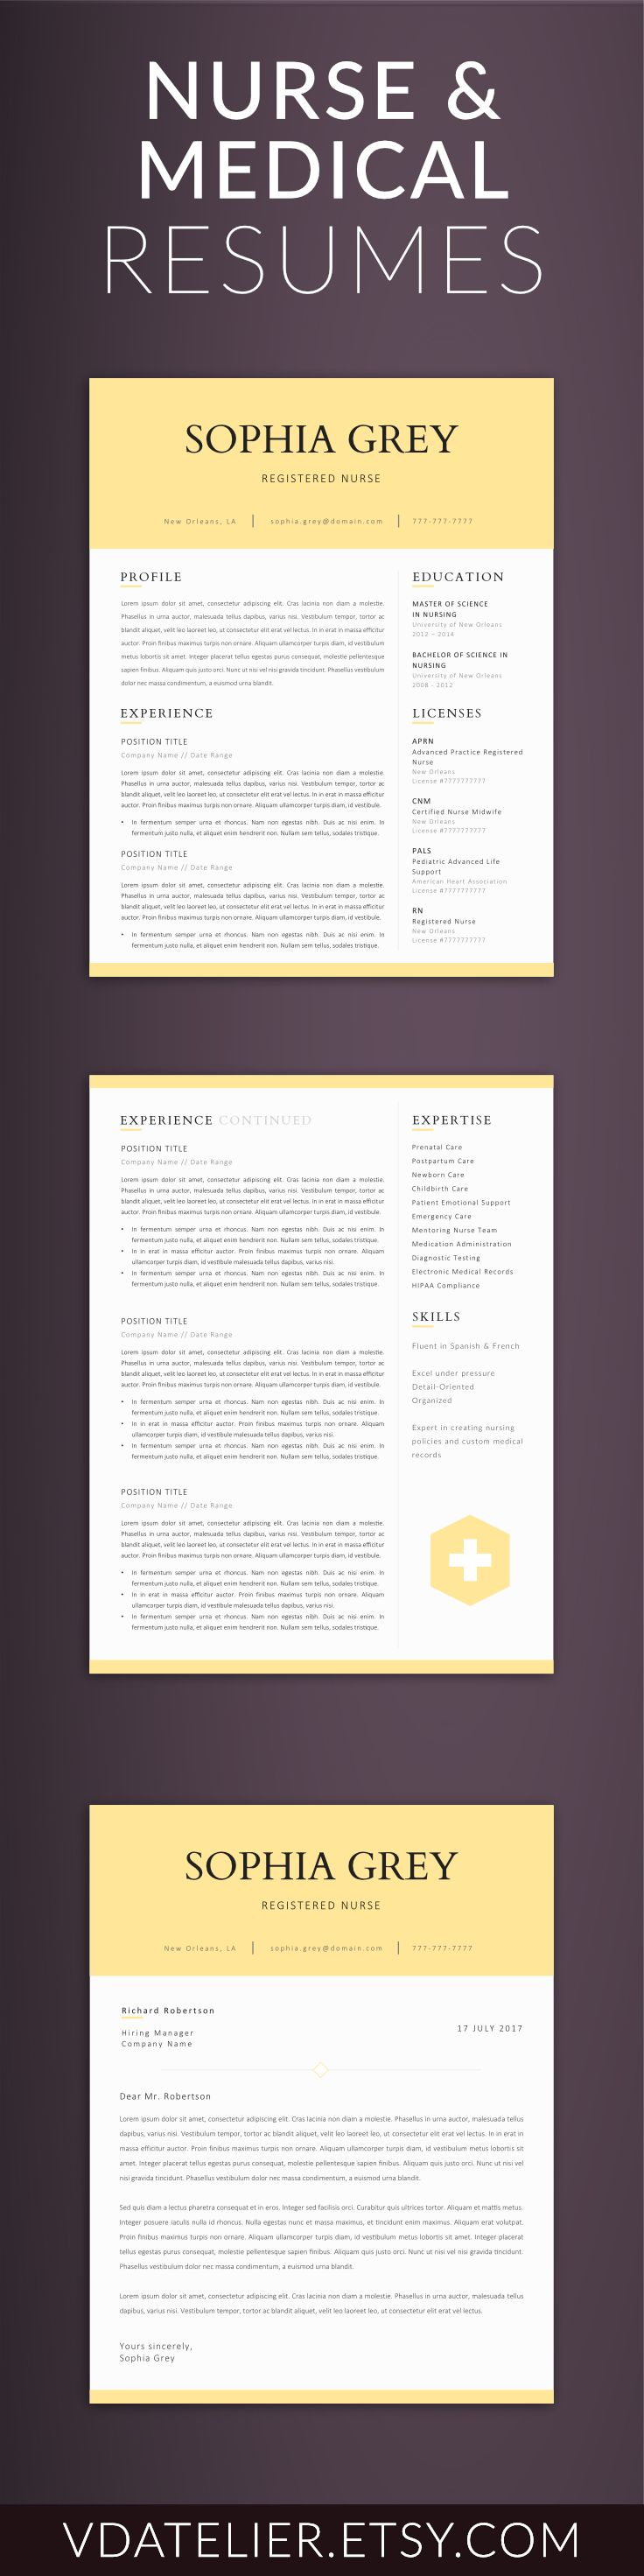 Free Resume Samples Best  Nursing Resume Ideas On Pinterestno Signup Required  Mba Resume Template Excel with Resumes For Teenager With No Work Experience Word Doctor Resume Template For Word Nurse Resume Template  Nurse Cv Template   Rn Resume A Better Resume